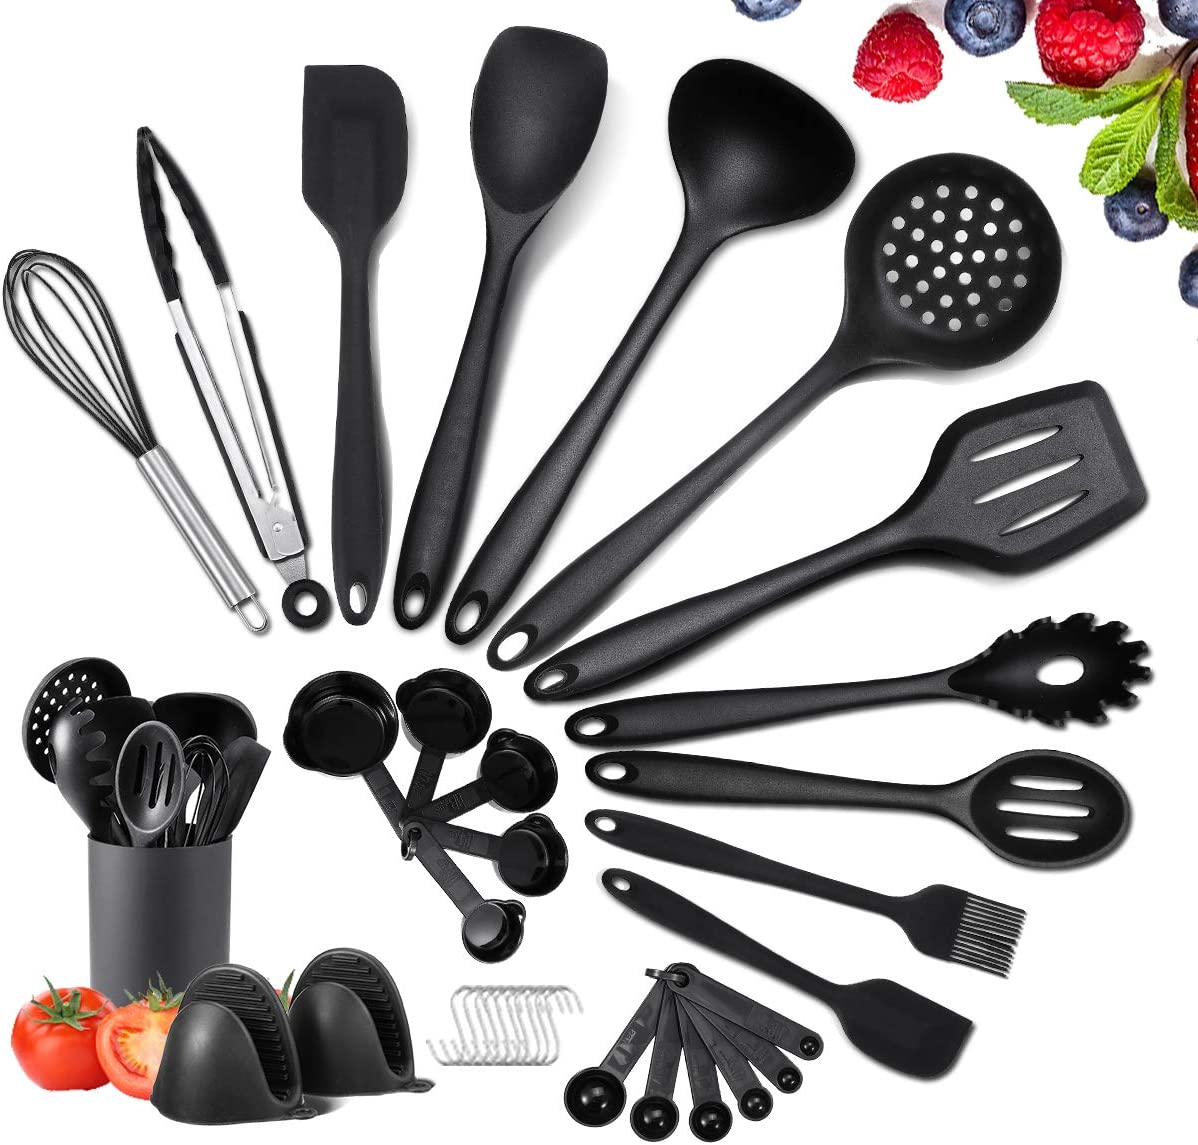 Kitchen Utensils Set Silicone Cooking Utensils Set With Holder, Godmorn 35 Pcs Kitchen Utensils for Cooking, BPA-Free Heat Resistant Kitchen Gadgets Tools for Nonstick Pan Cookware, Black